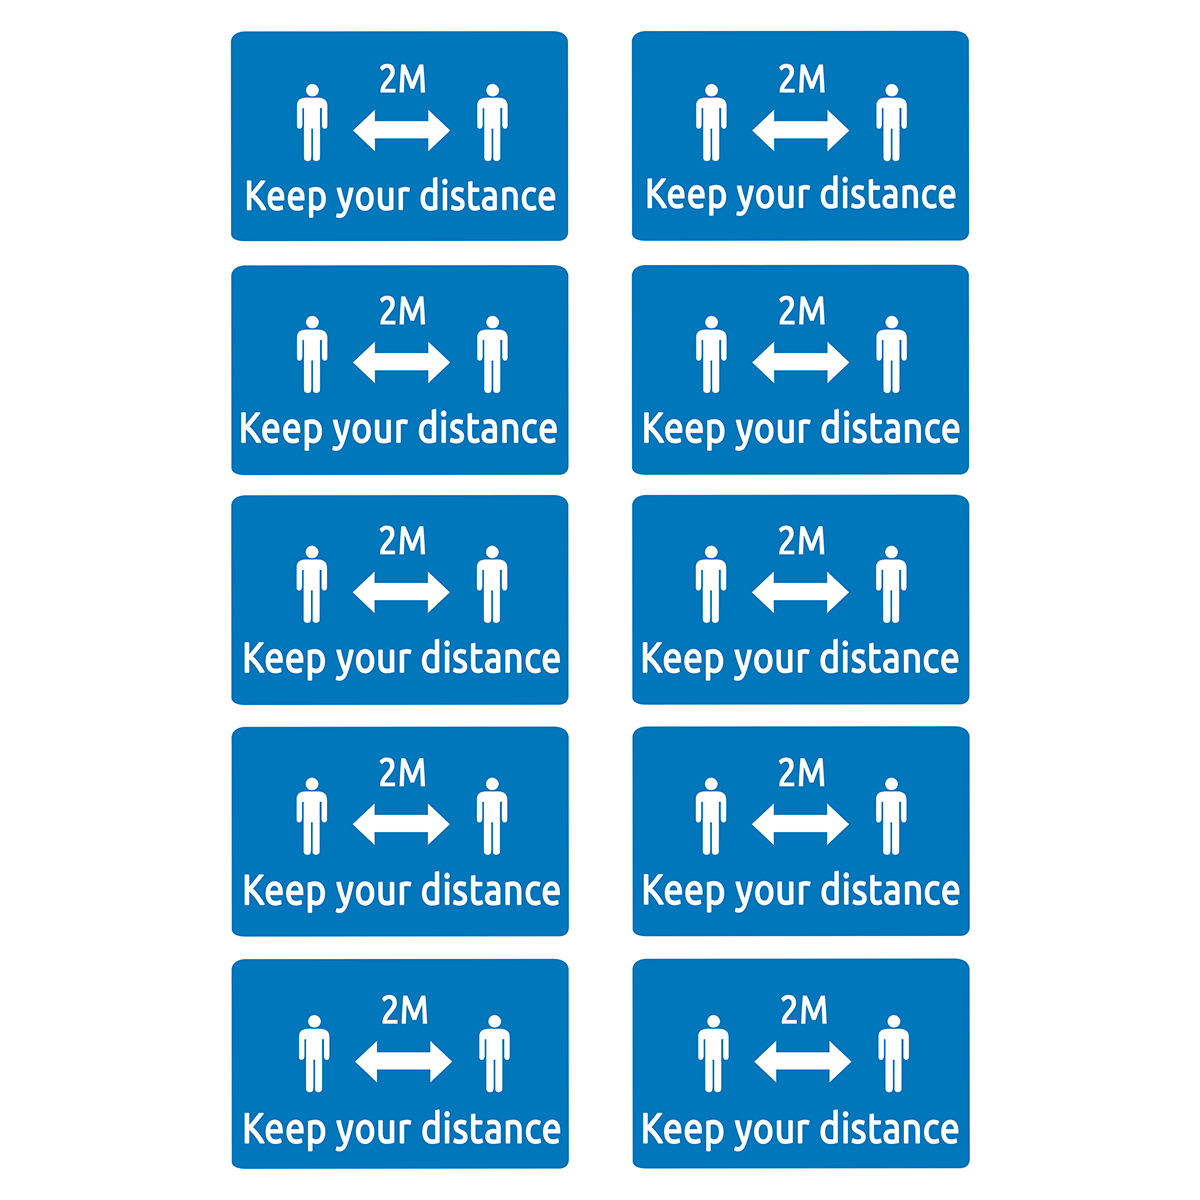 Avery Square 2m Keep your Distance Self-Adhesive Pre-Printed Badges